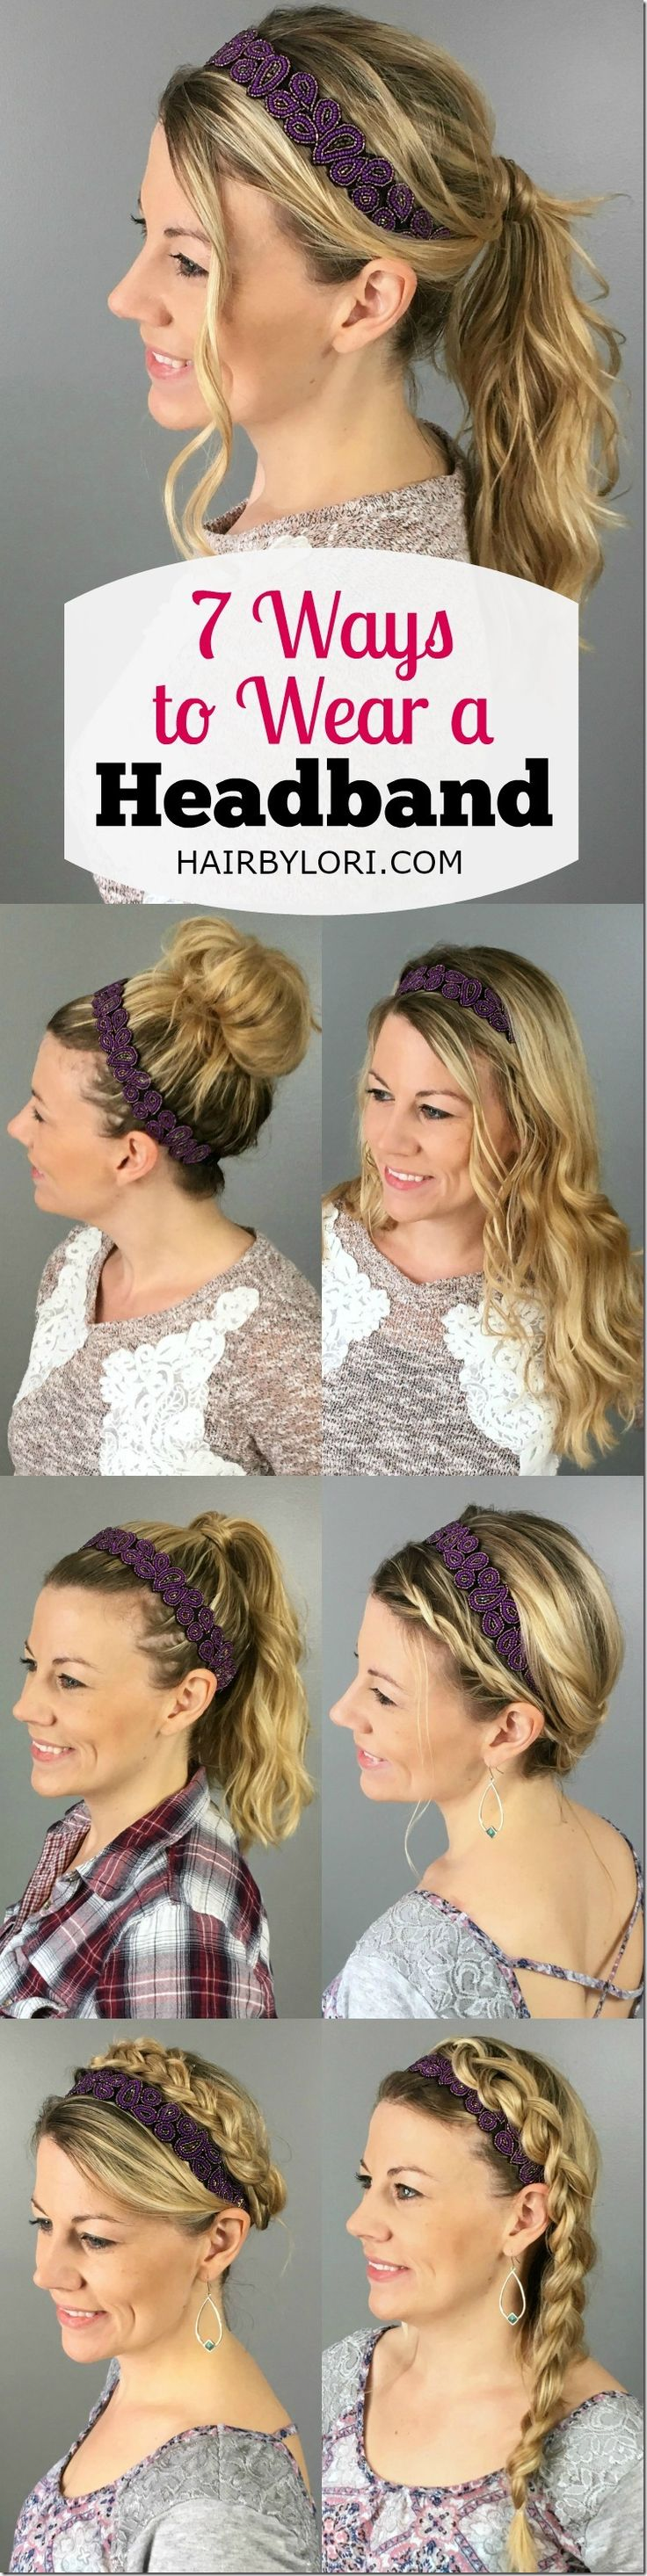 25+ best headband hairstyles ideas on pinterest | headband updo